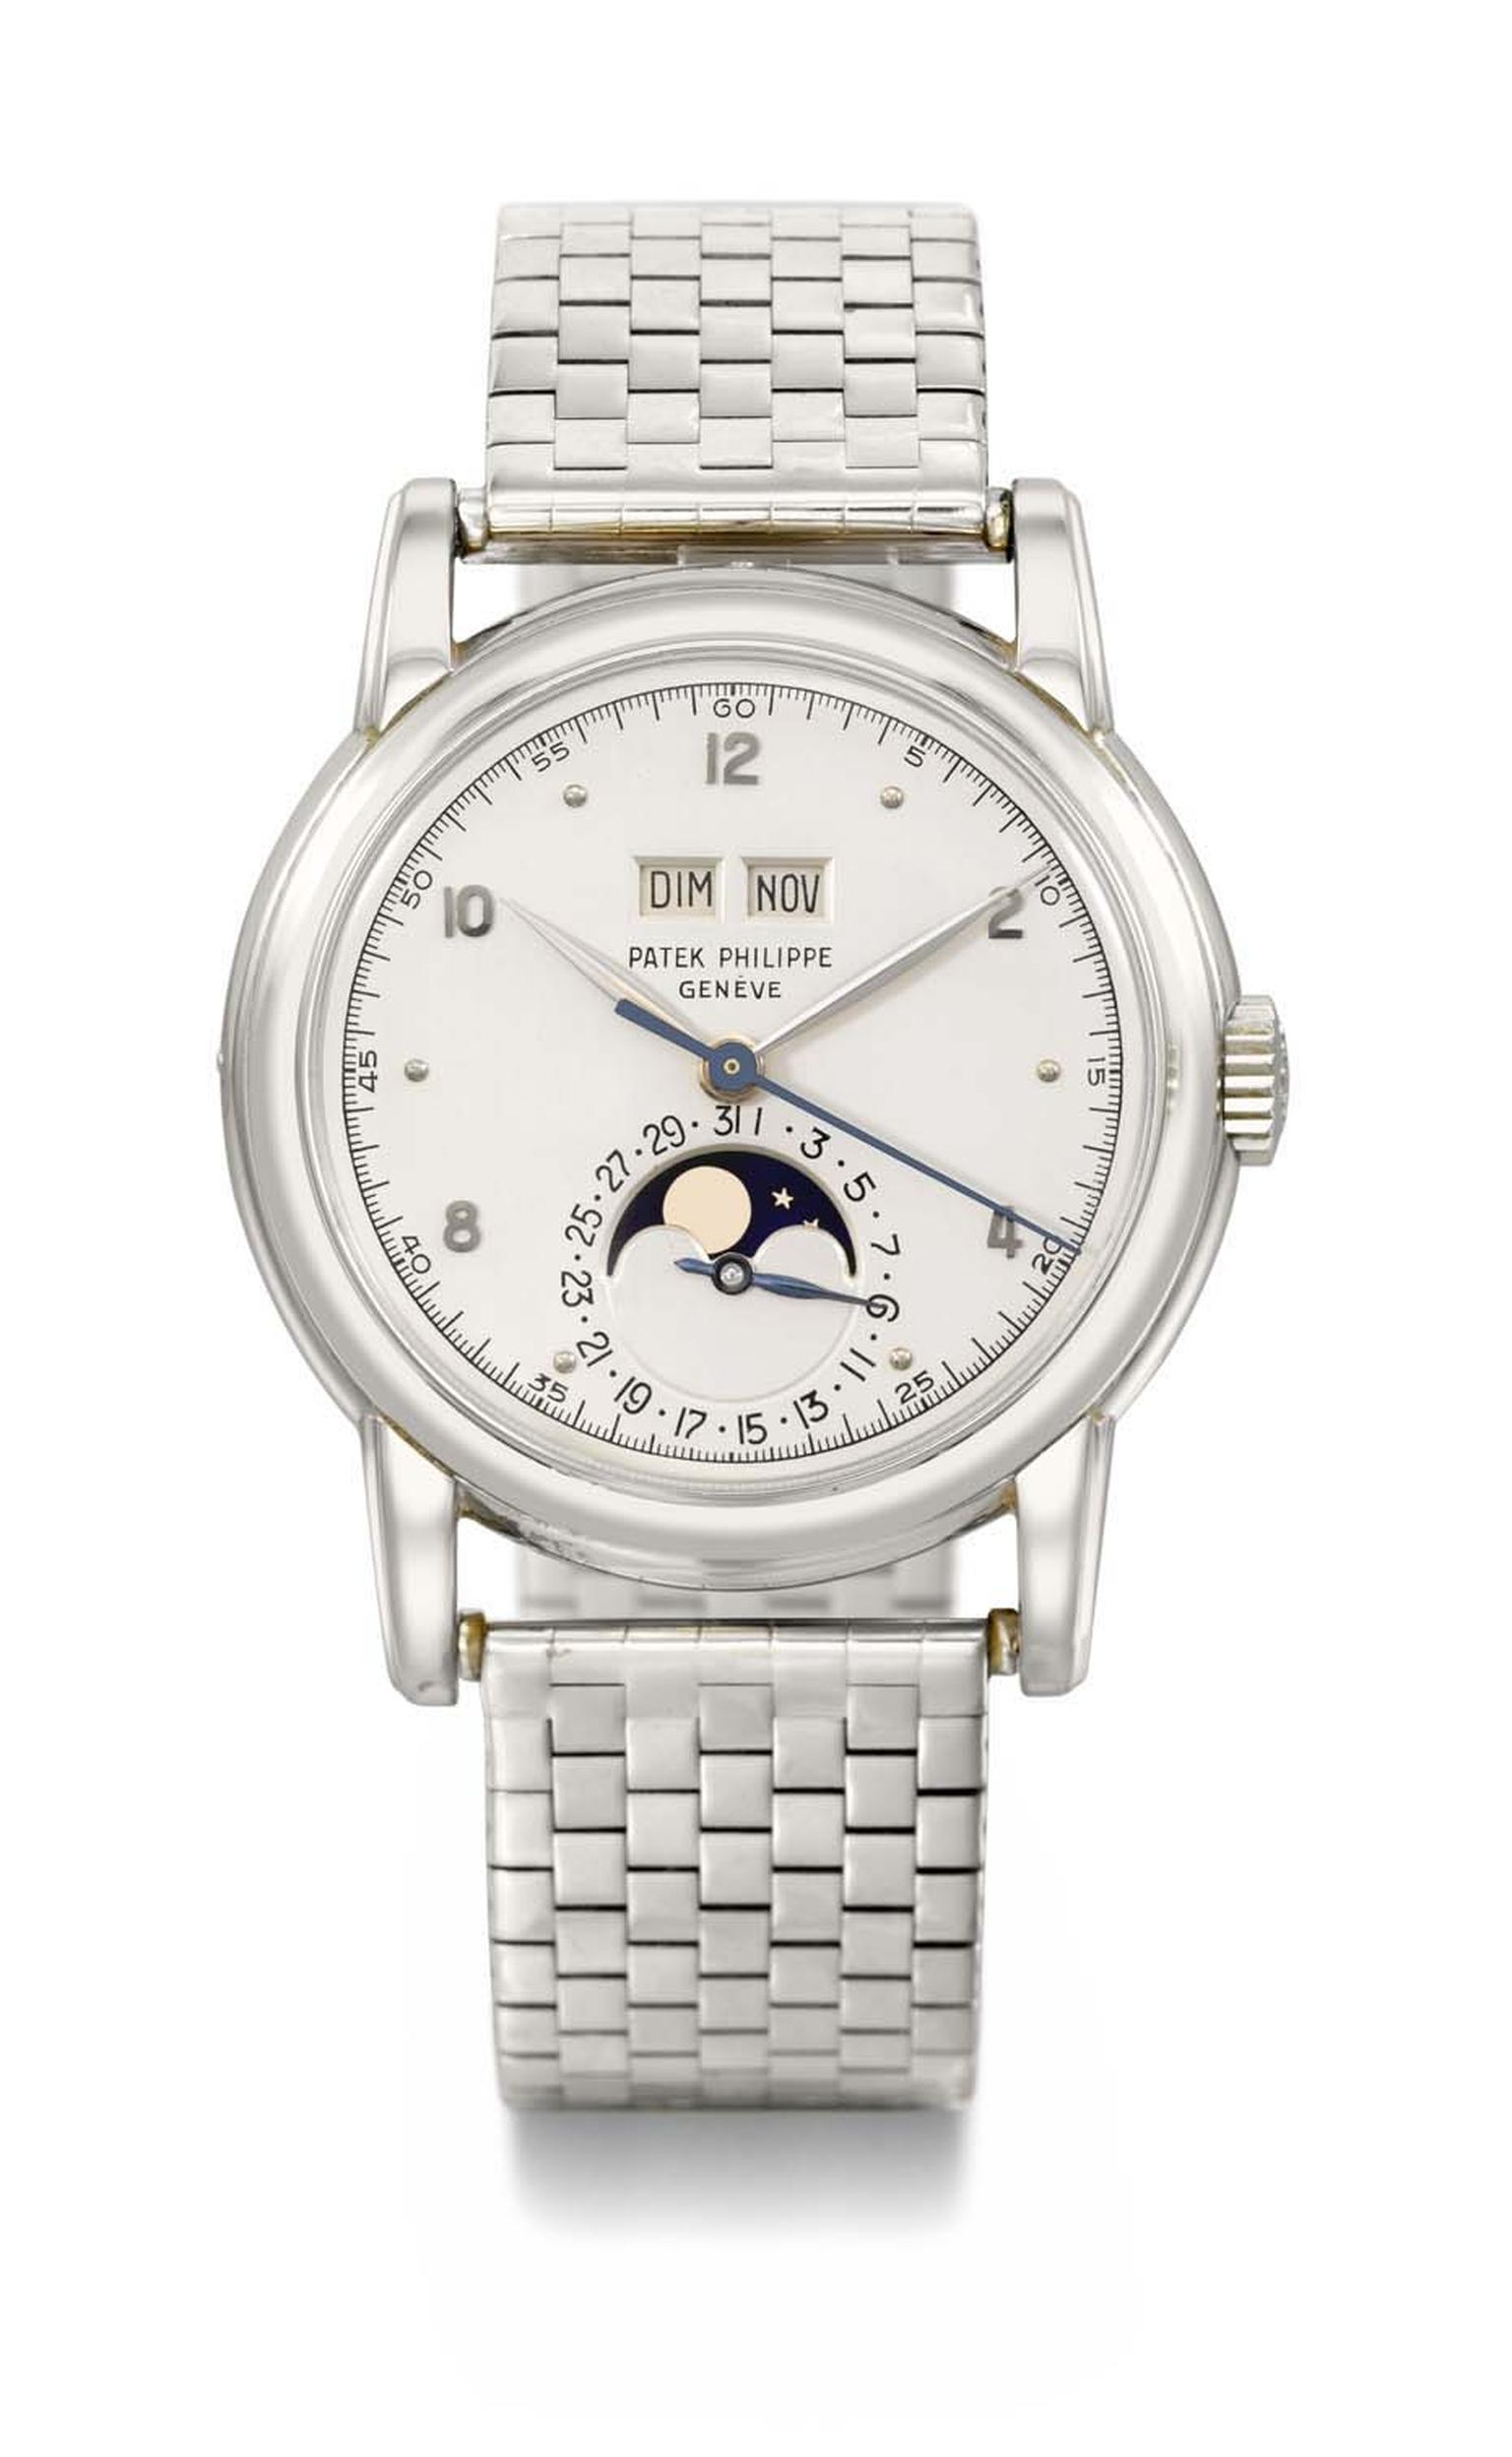 This Patek Philippe watch Reference 2497 is the third existing model of this reference ever to have been crafted in white gold. The perpetual calendar with Moon phase wristwatch had never appeared in public before the auction at Christie's Geneva, where i